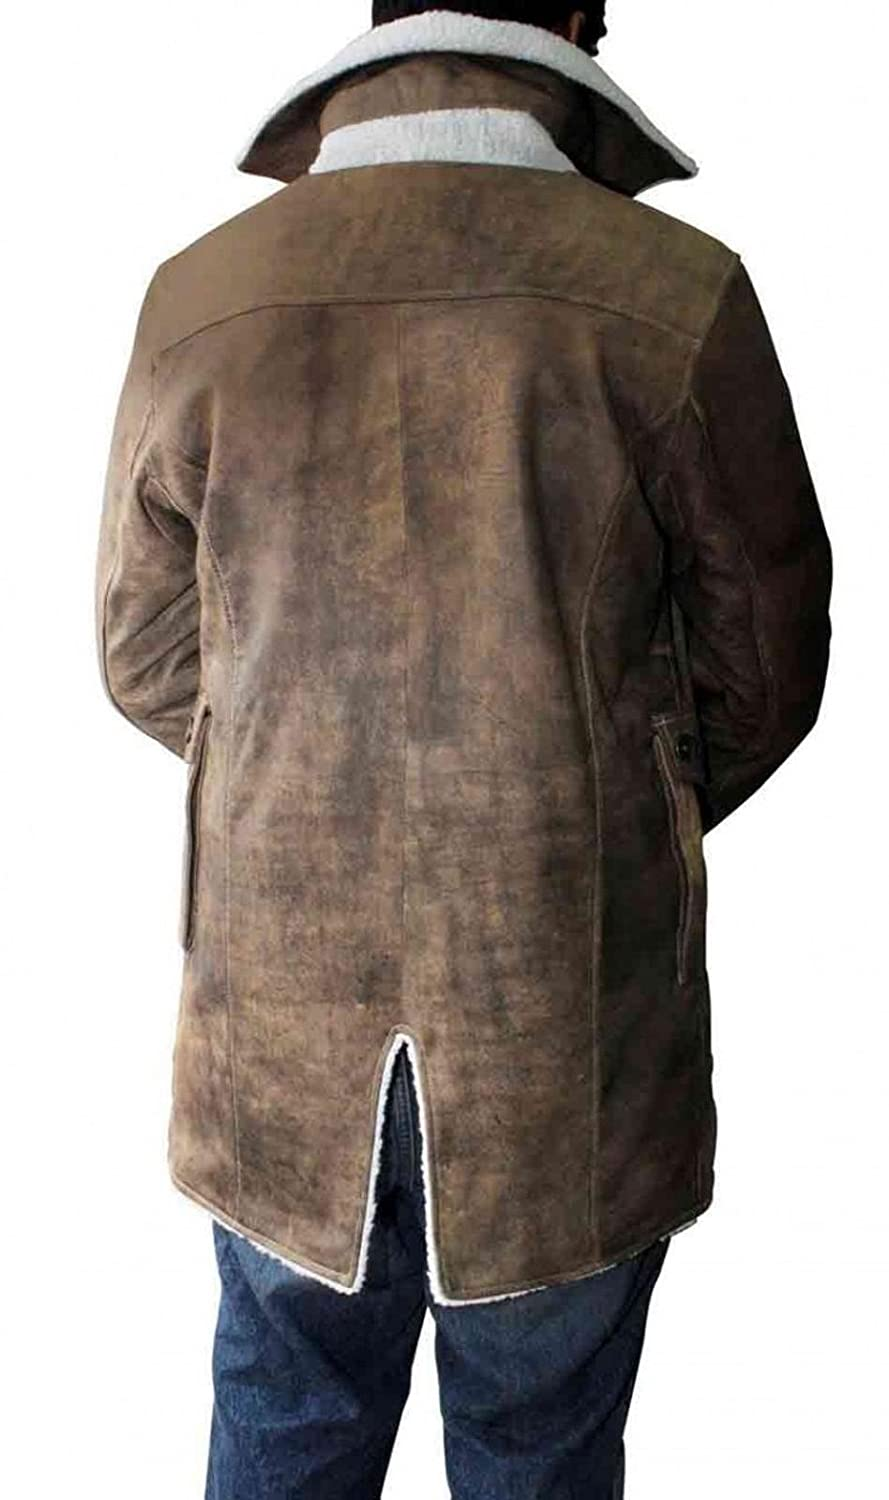 1a1c8190ddac Bestzo Men s Dark Knight Fashion Bane Coat with Faux Shearling Cowhide  Distressed Leather Brown XS-5XL at Amazon Men s Clothing store